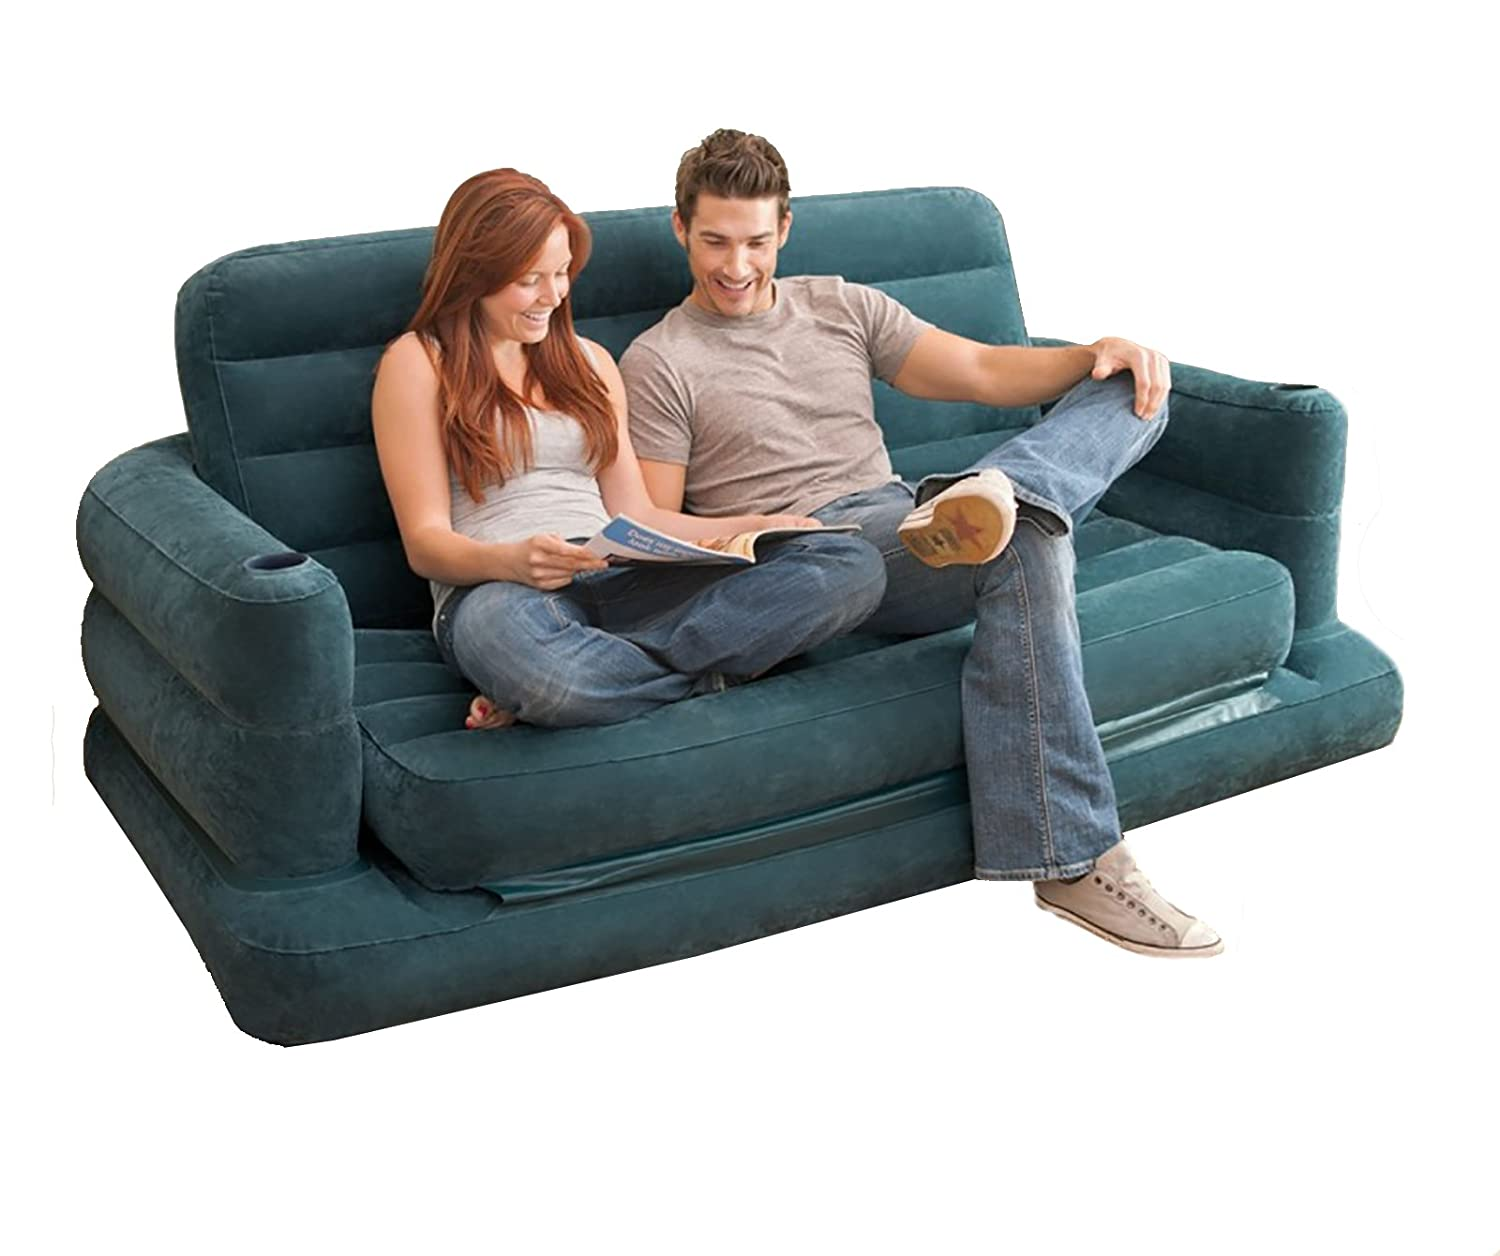 Intex Pull Out Sofa Intex Size Pull Out